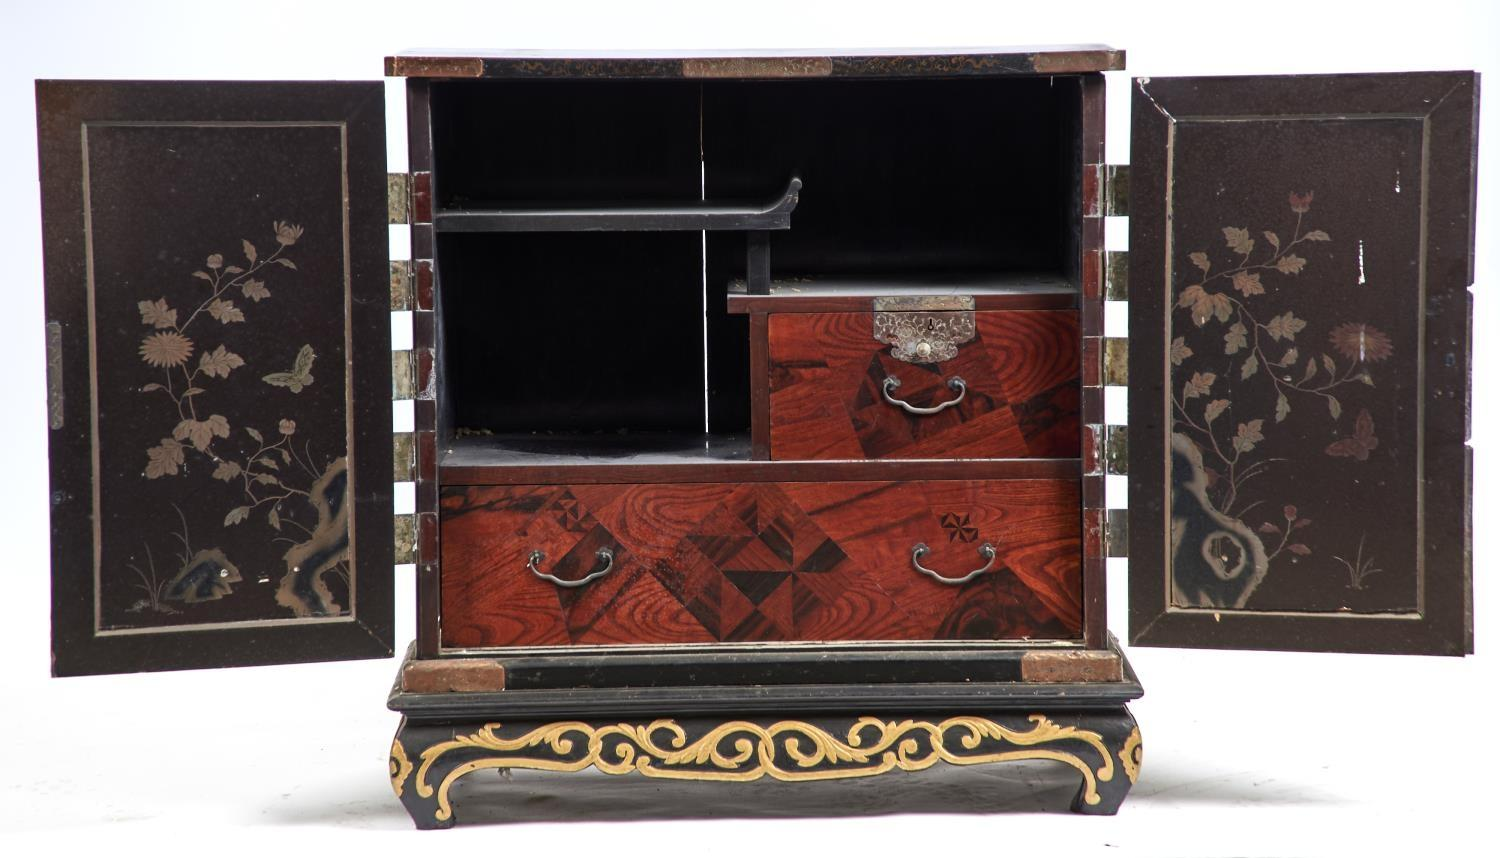 A JAPANESE ELM CABINET, LATE 19TH C, THE ROUNDED RECTANGULAR TOP WITH APPLIED ENGRAVED COPPER CLASPS - Image 2 of 2